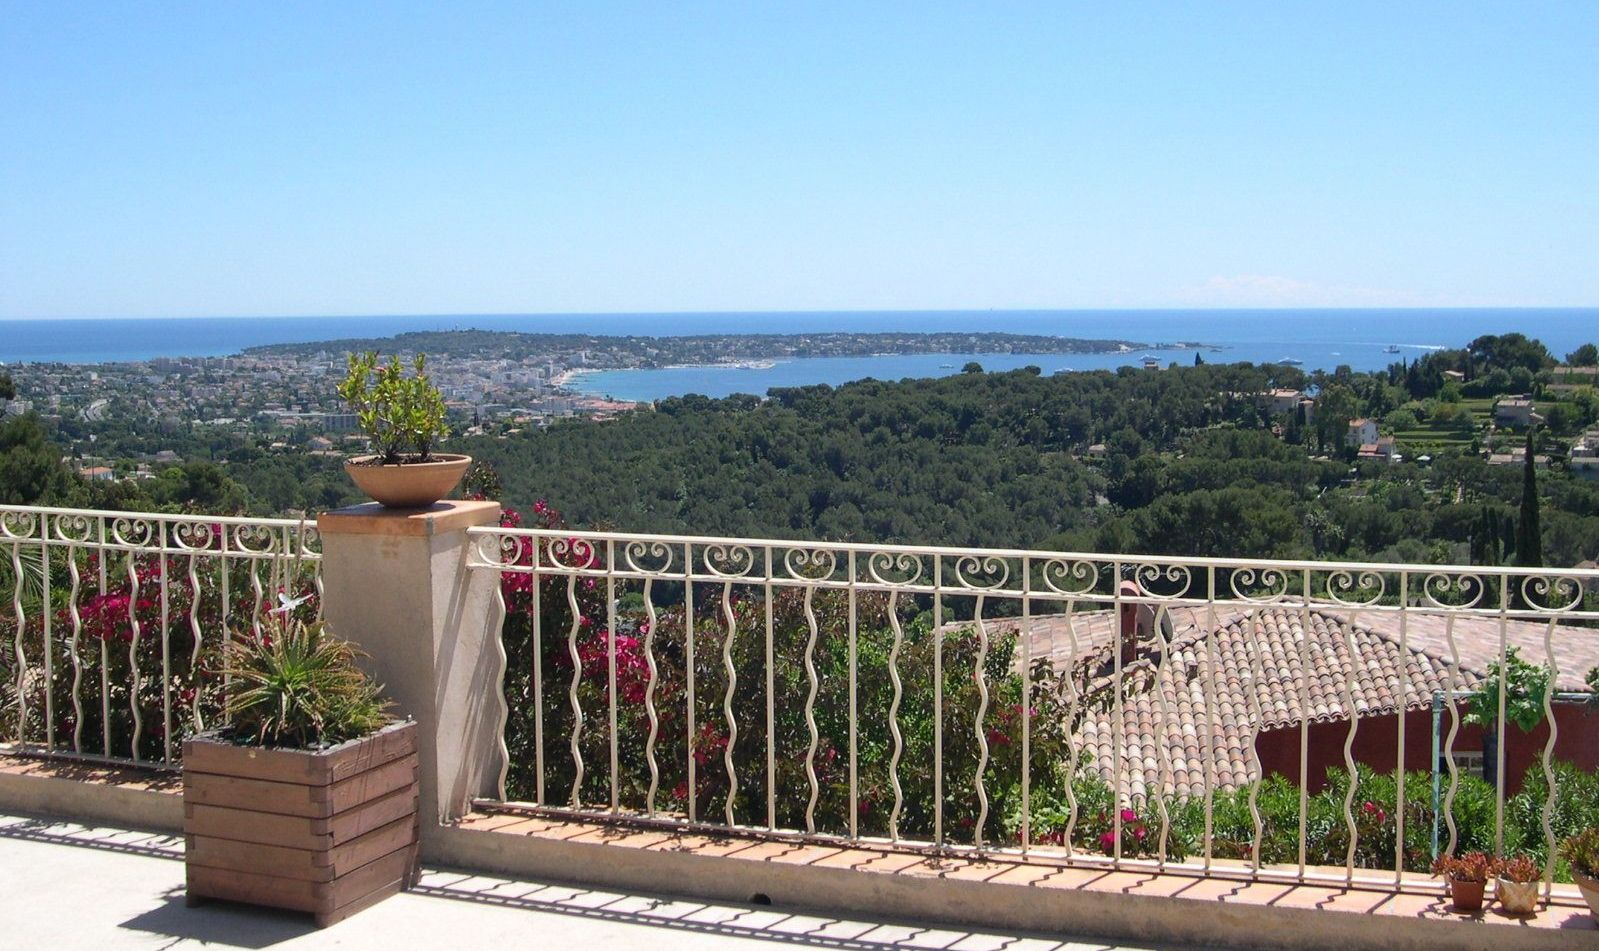 We have a wide range of quality apartments and villas for sale on the Côte d'Azur